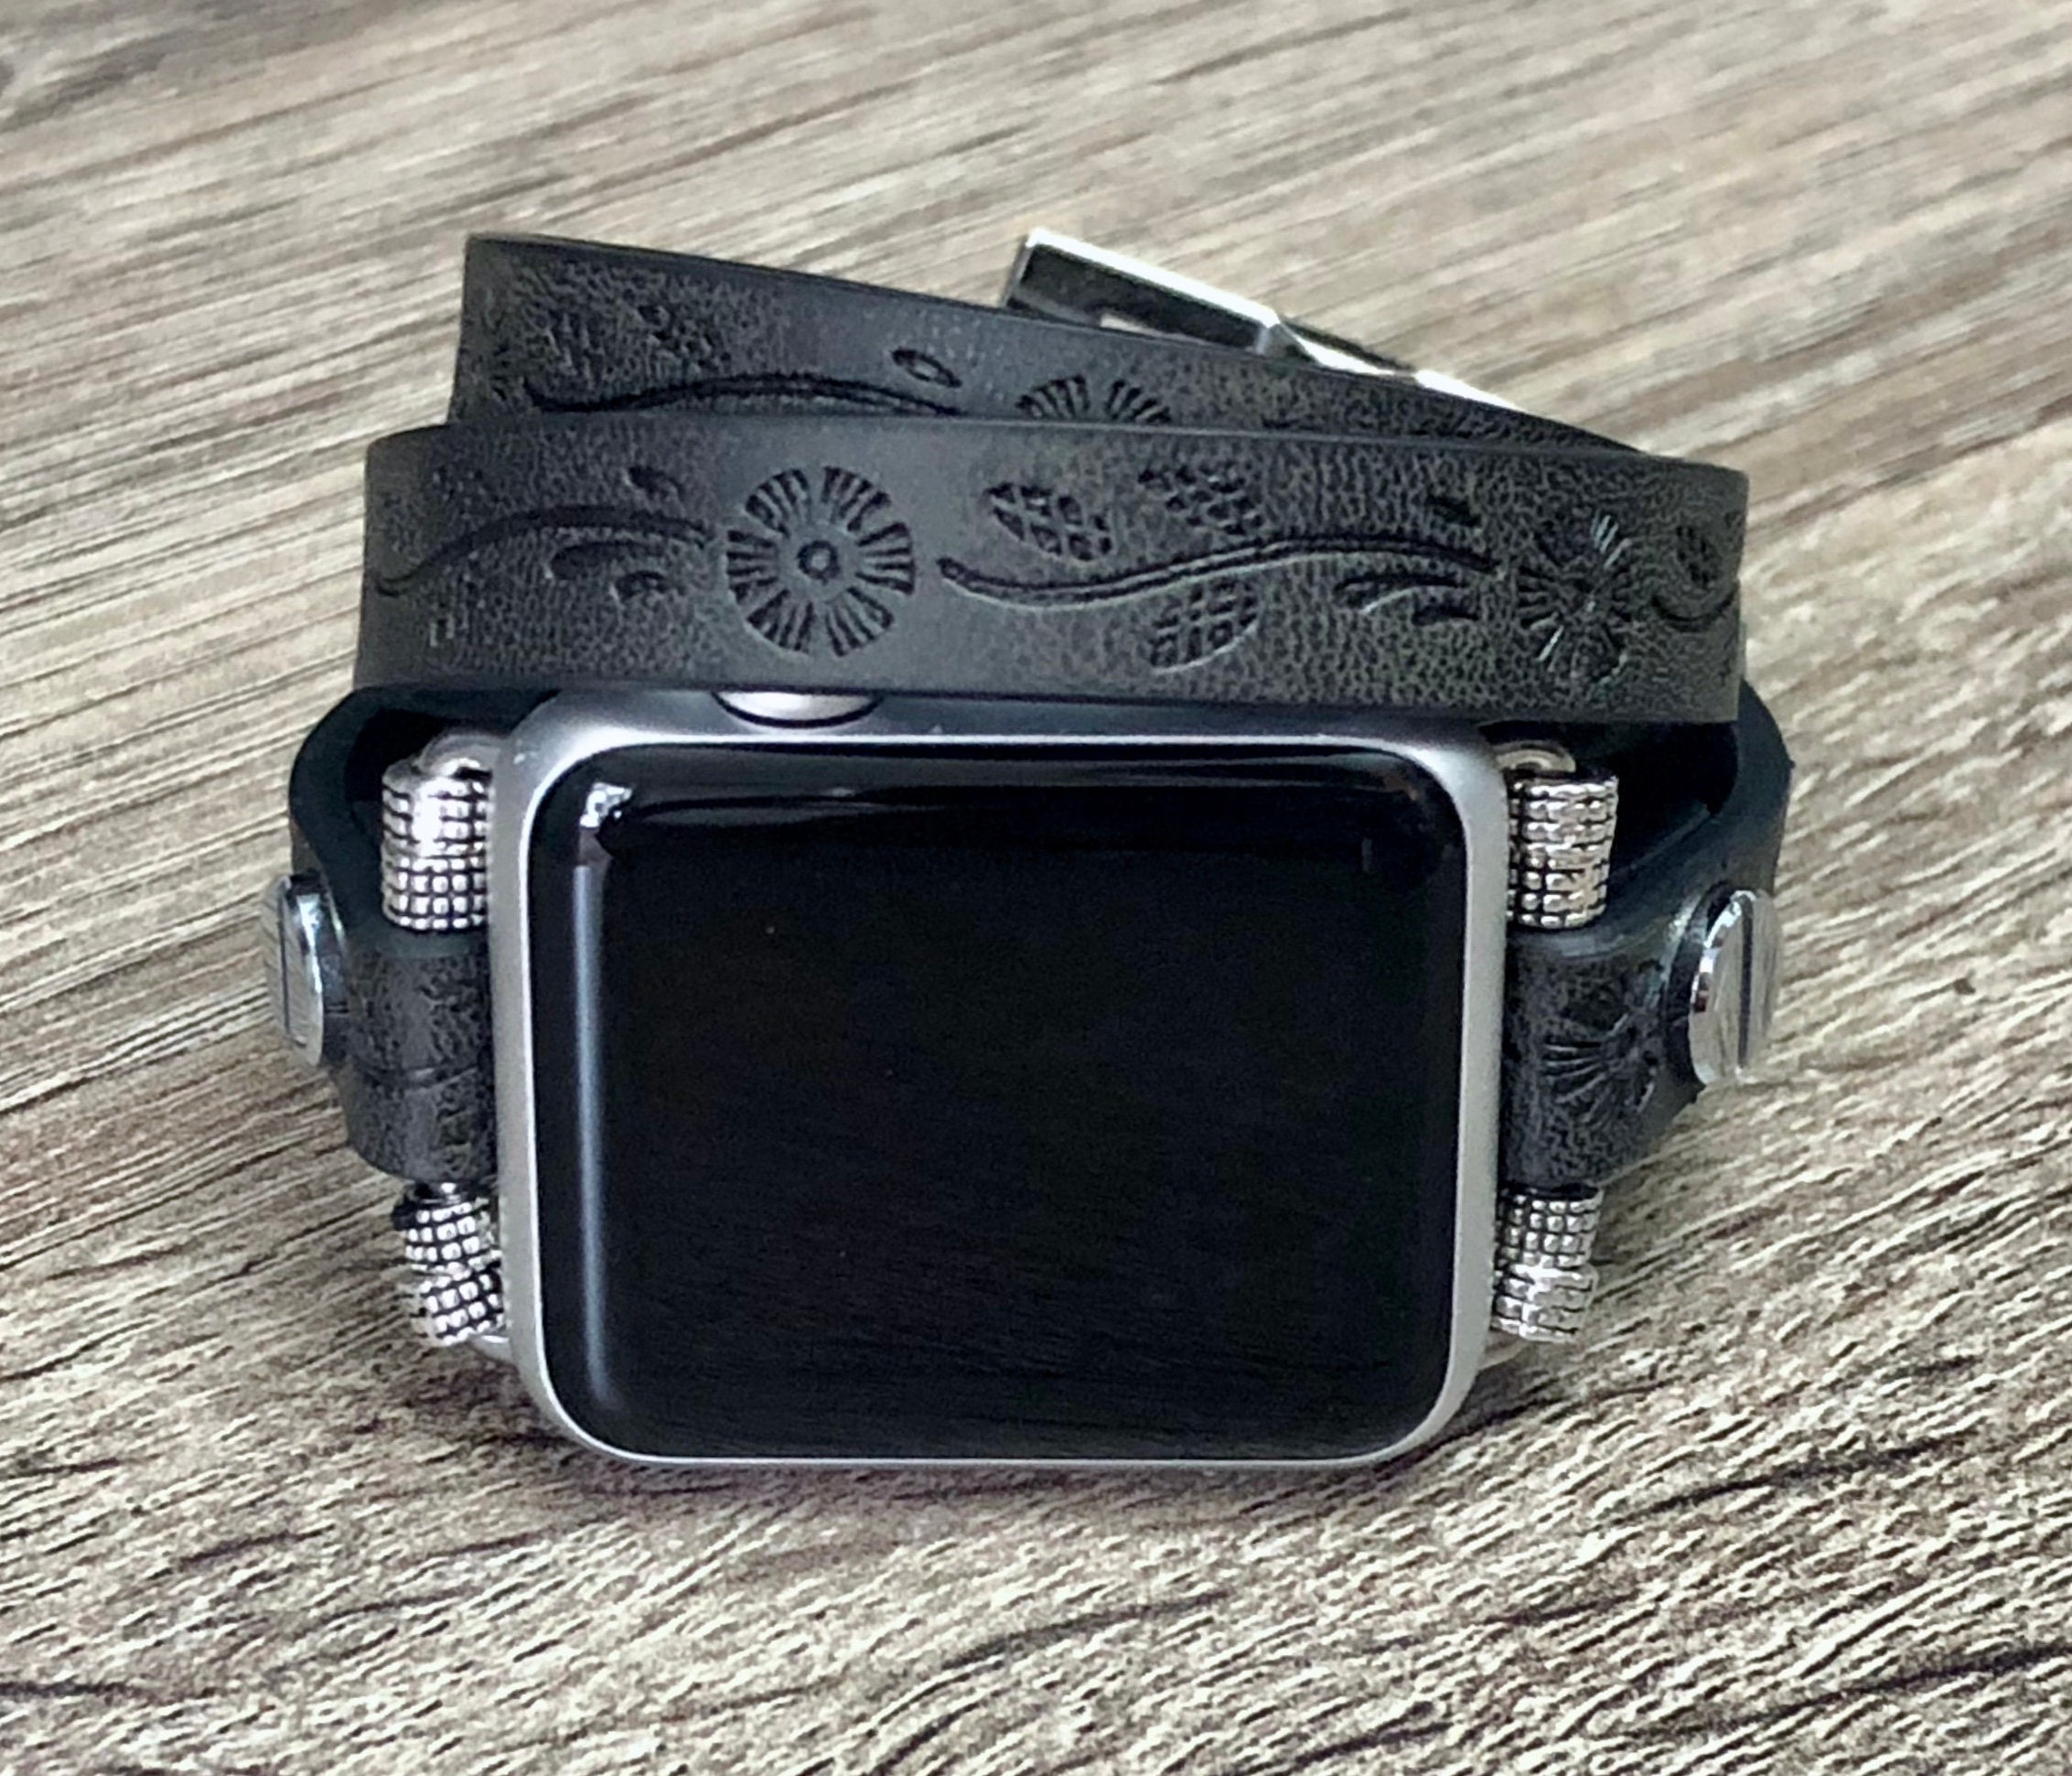 8c711d01cd6 Black Leather Bracelet for Apple Watch 38mm 42mm Multi Wrap Apple Watch  Band Unisex Jewelry iWatch Leather Wristband Adjustable iWatch Band